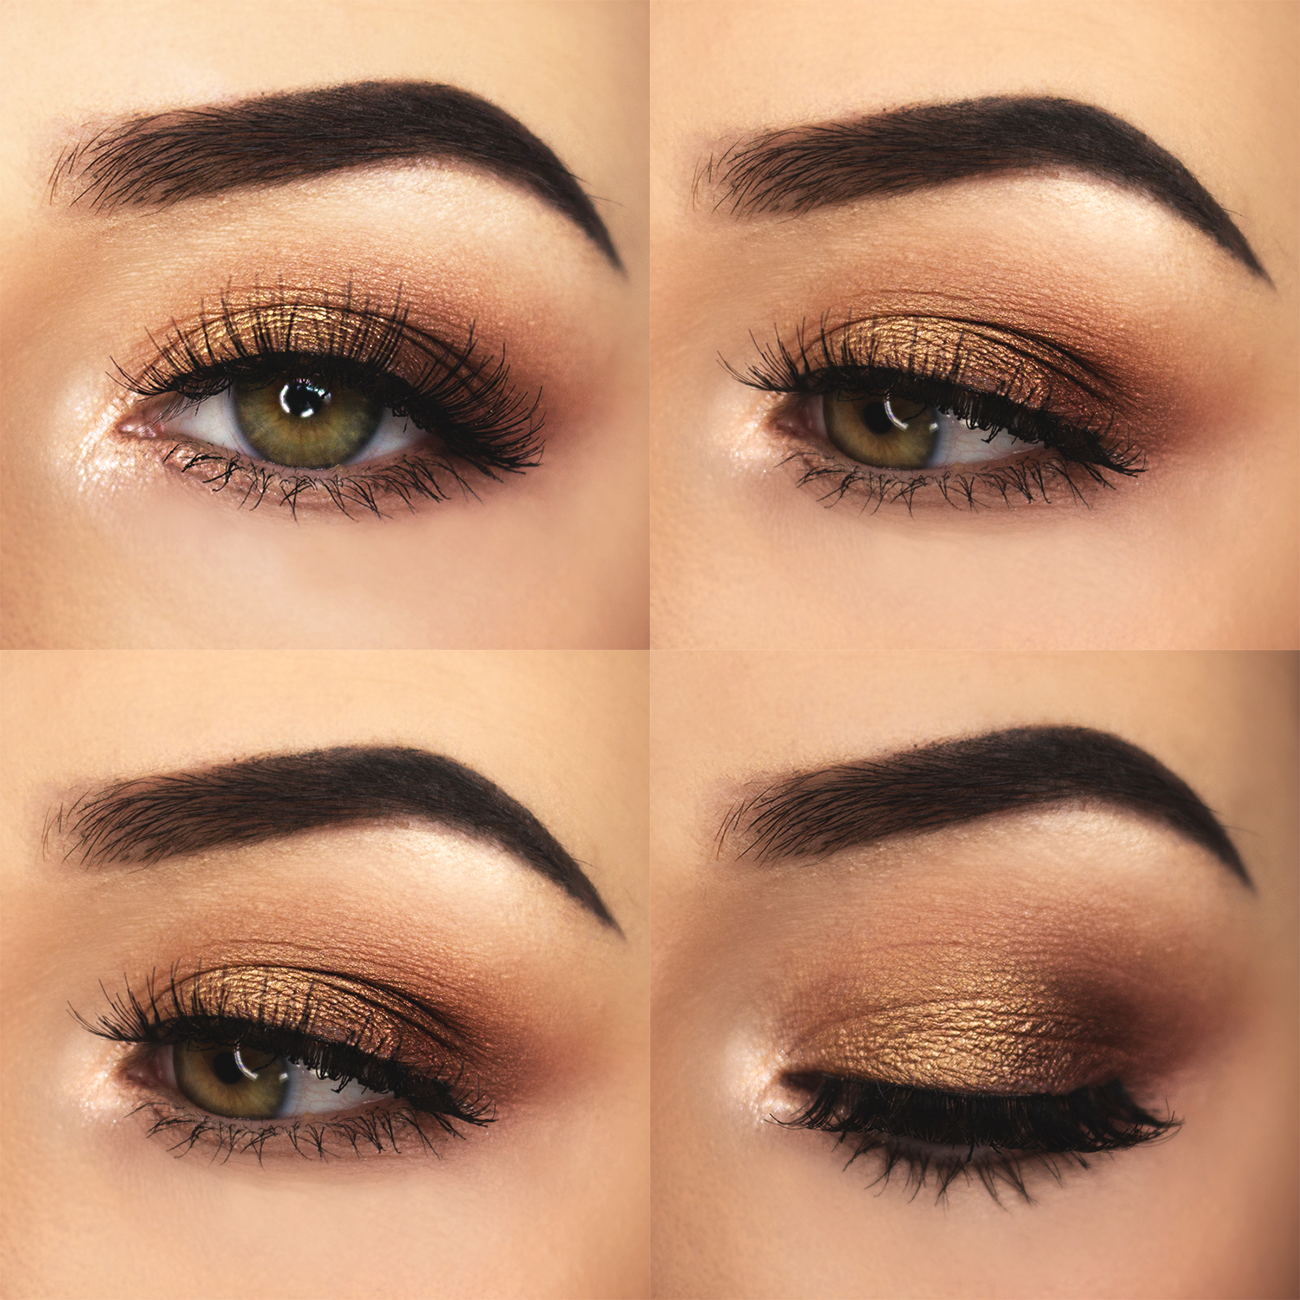 Kiss Makeup Designs: Warm Summer Eye Makeup (Gemma Louise)